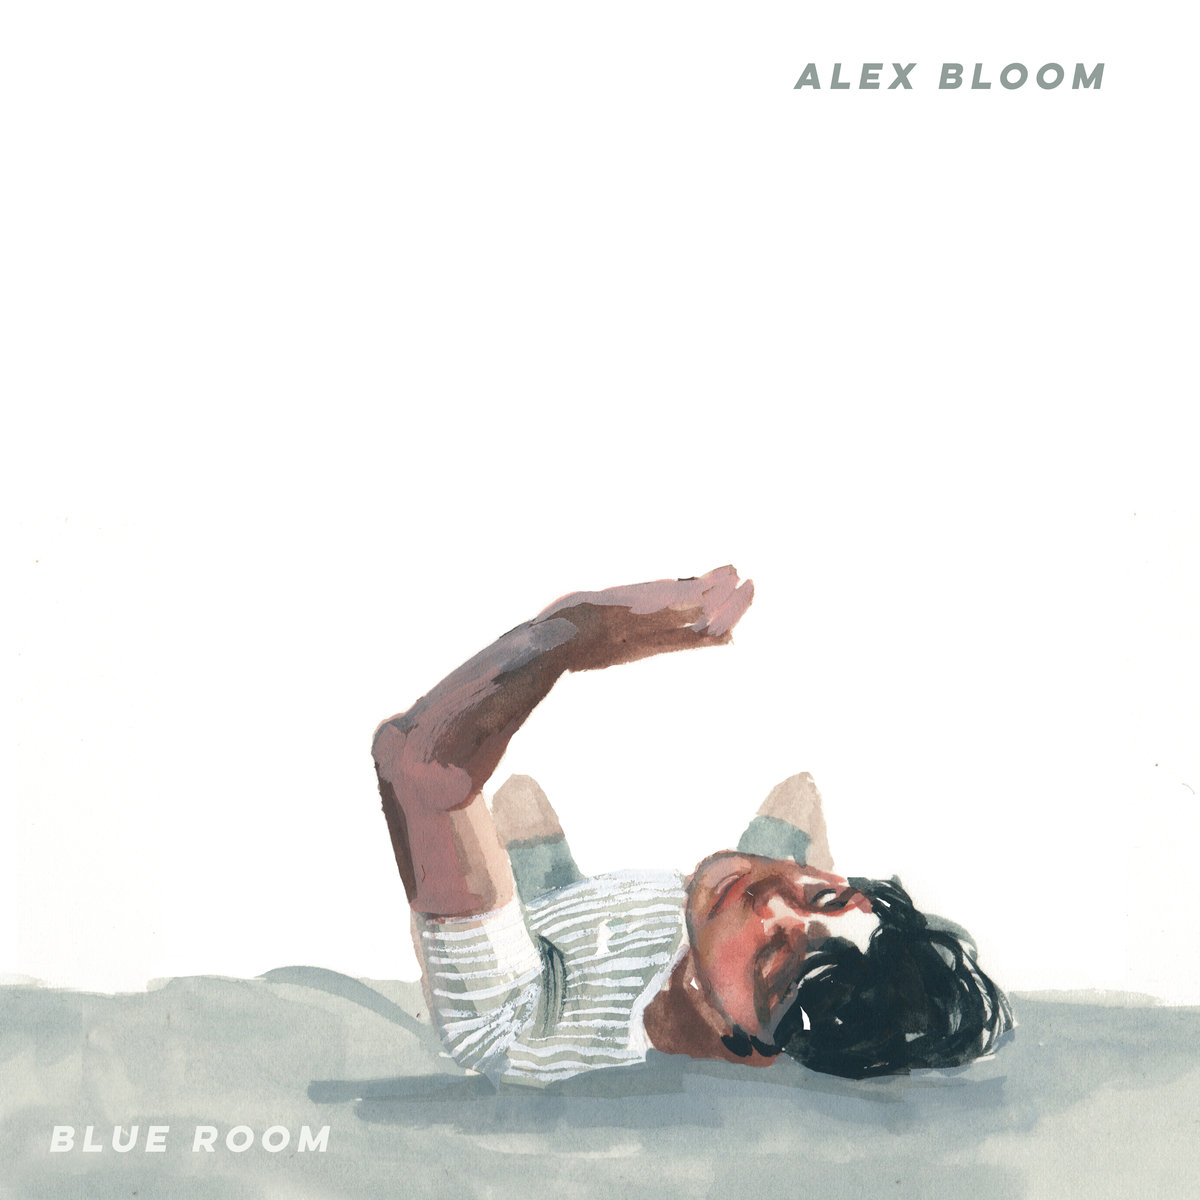 'Blue Room' by Alex Bloom, album review by Beth Andralojc